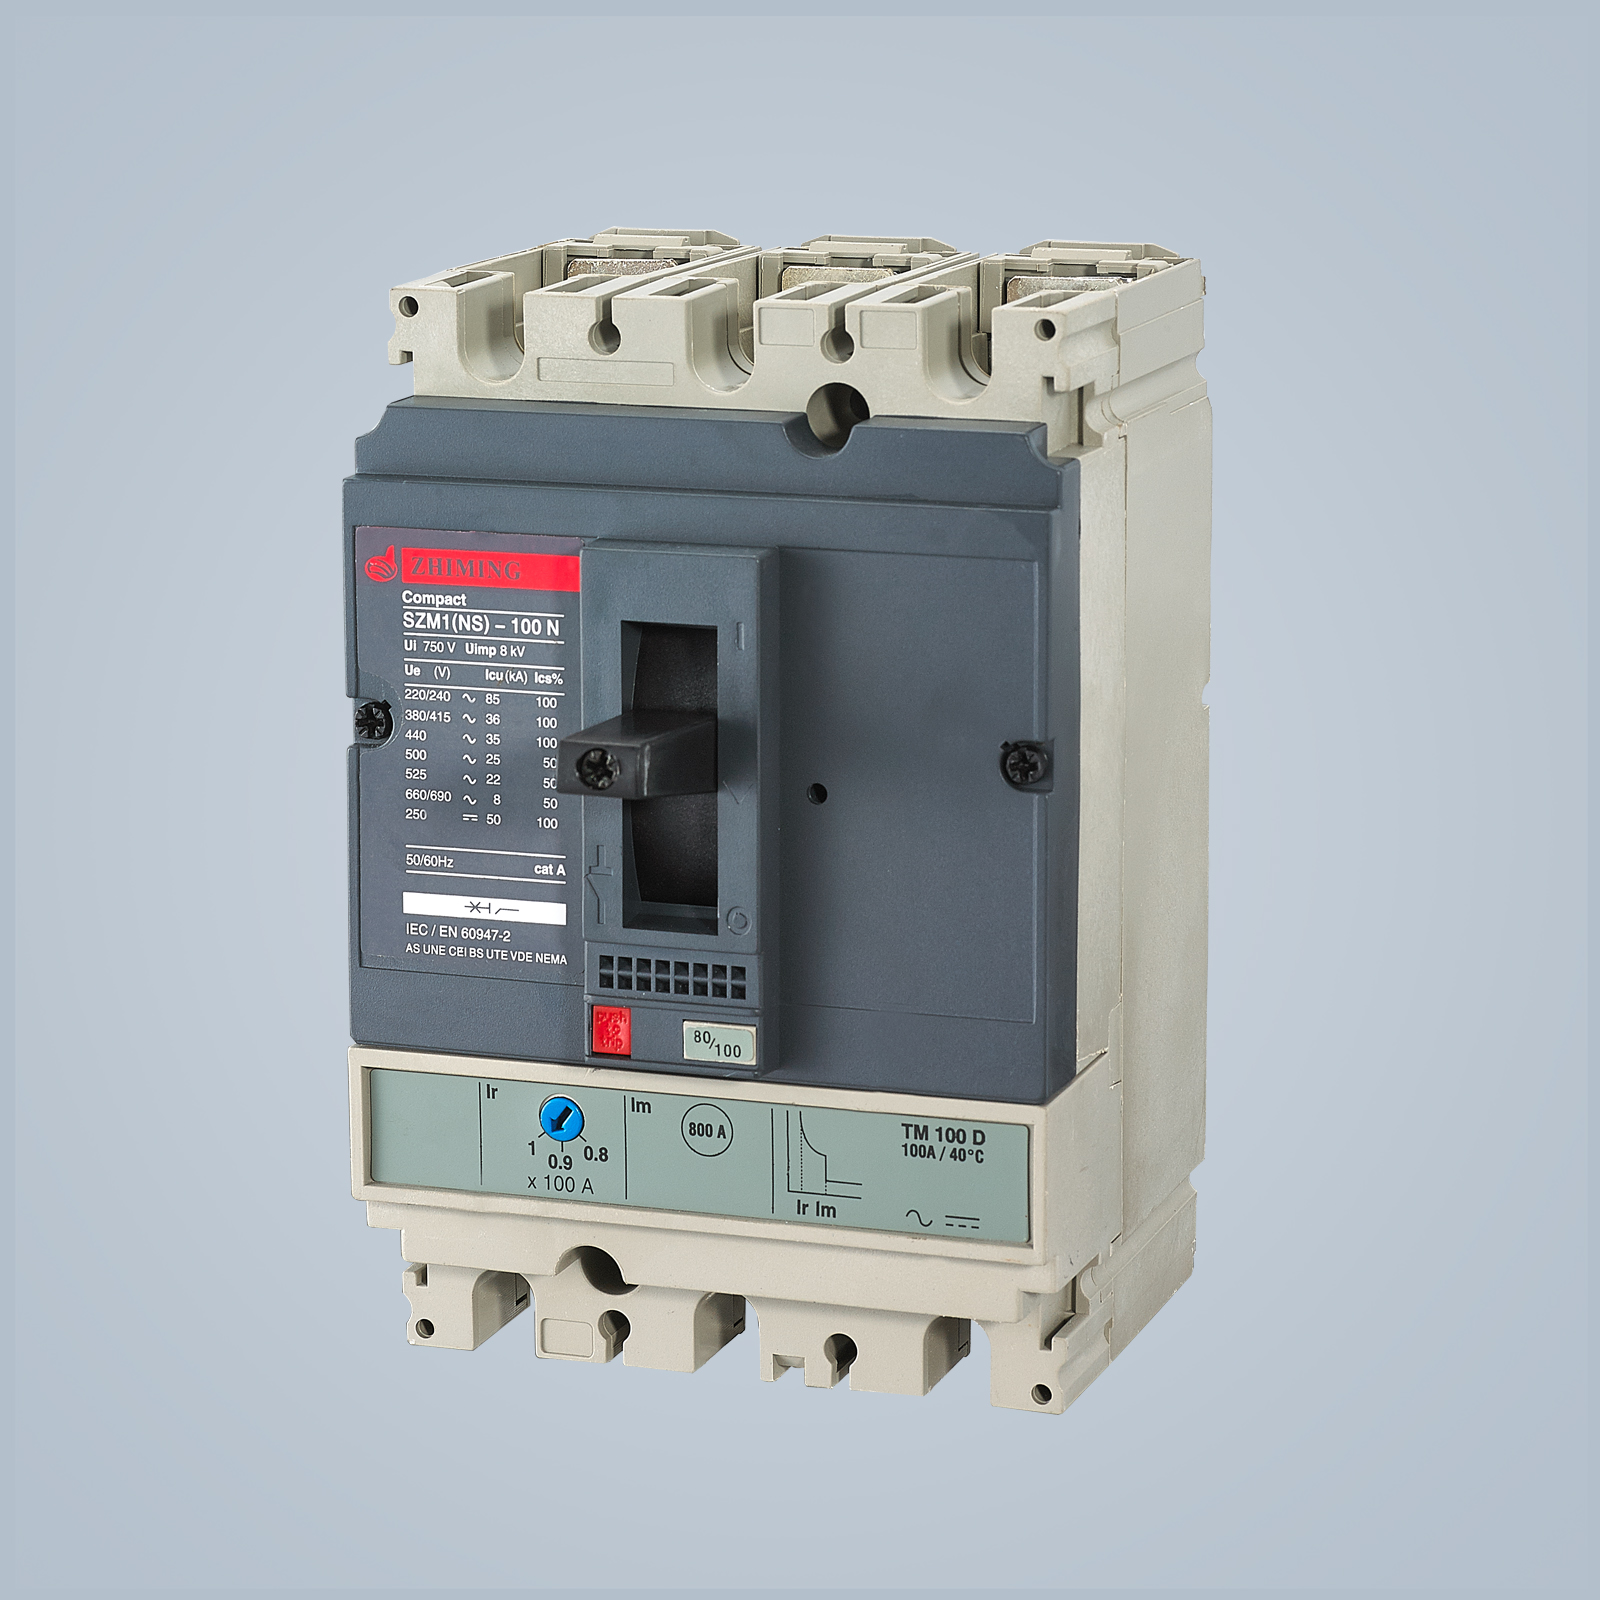 SZM1(NS)Series moulded case circuit breaker (electronic type)